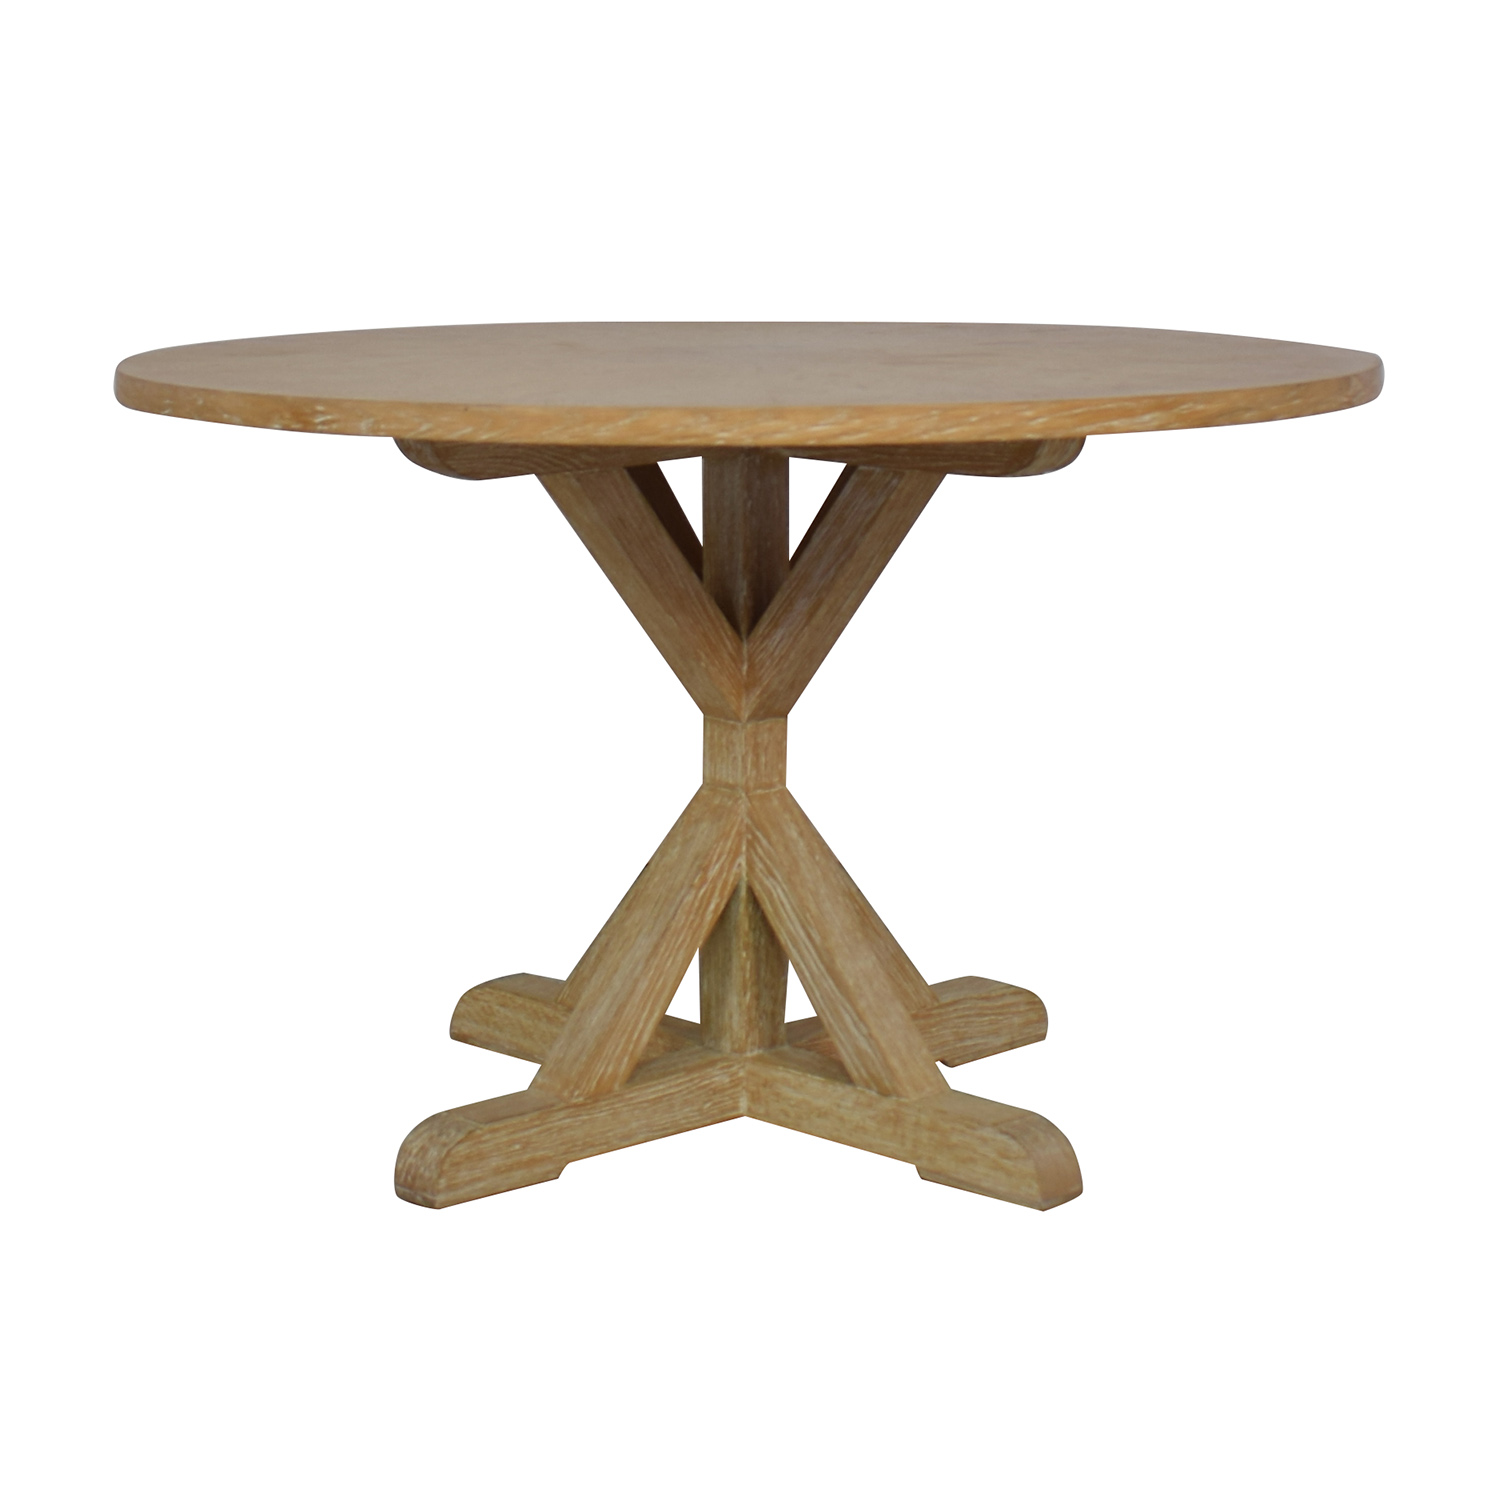 Birch Lane Birch Lane Peralta Dining Table nyc